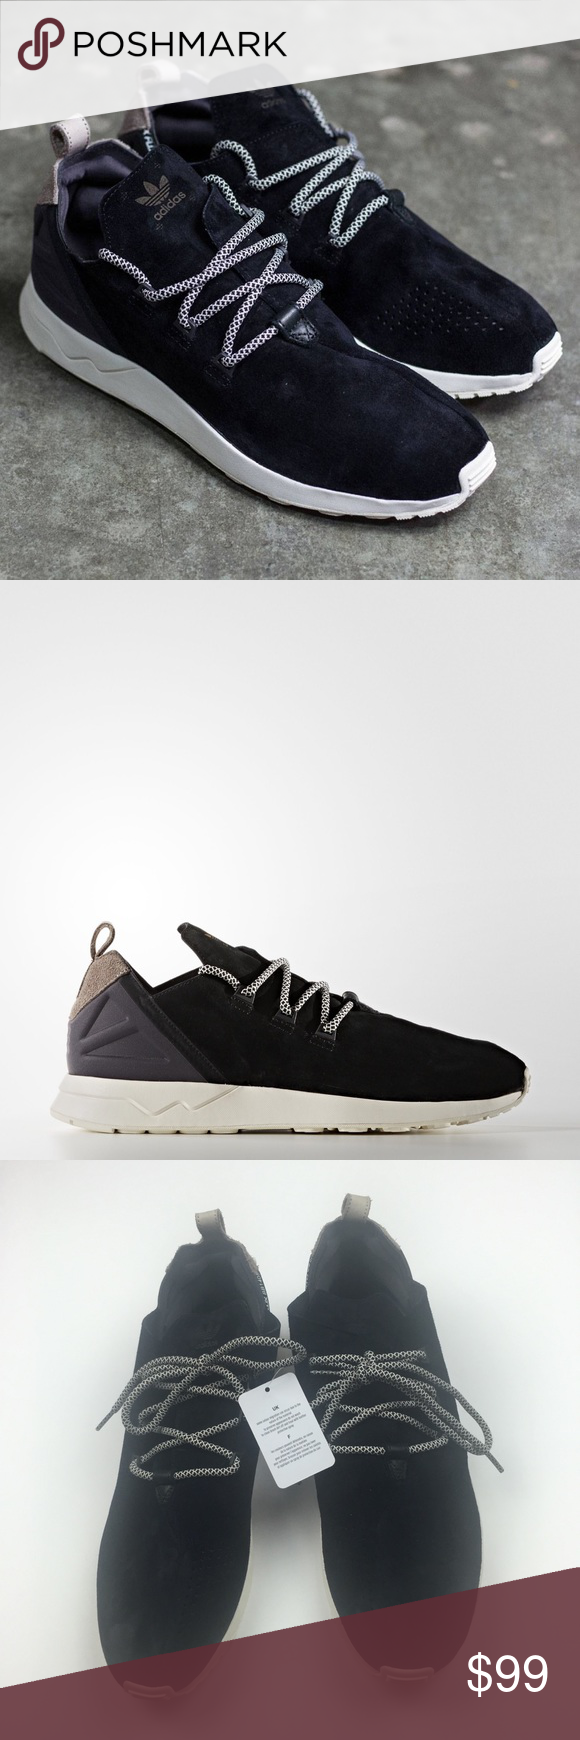 new style 5c2d1 6d878 New Men s Adidas ZX Flux ADV X BB1405 Sneakers Brand new with tags. Men s  size 13.5. Black suede. No trades.  112398  adidas Shoes Sneakers